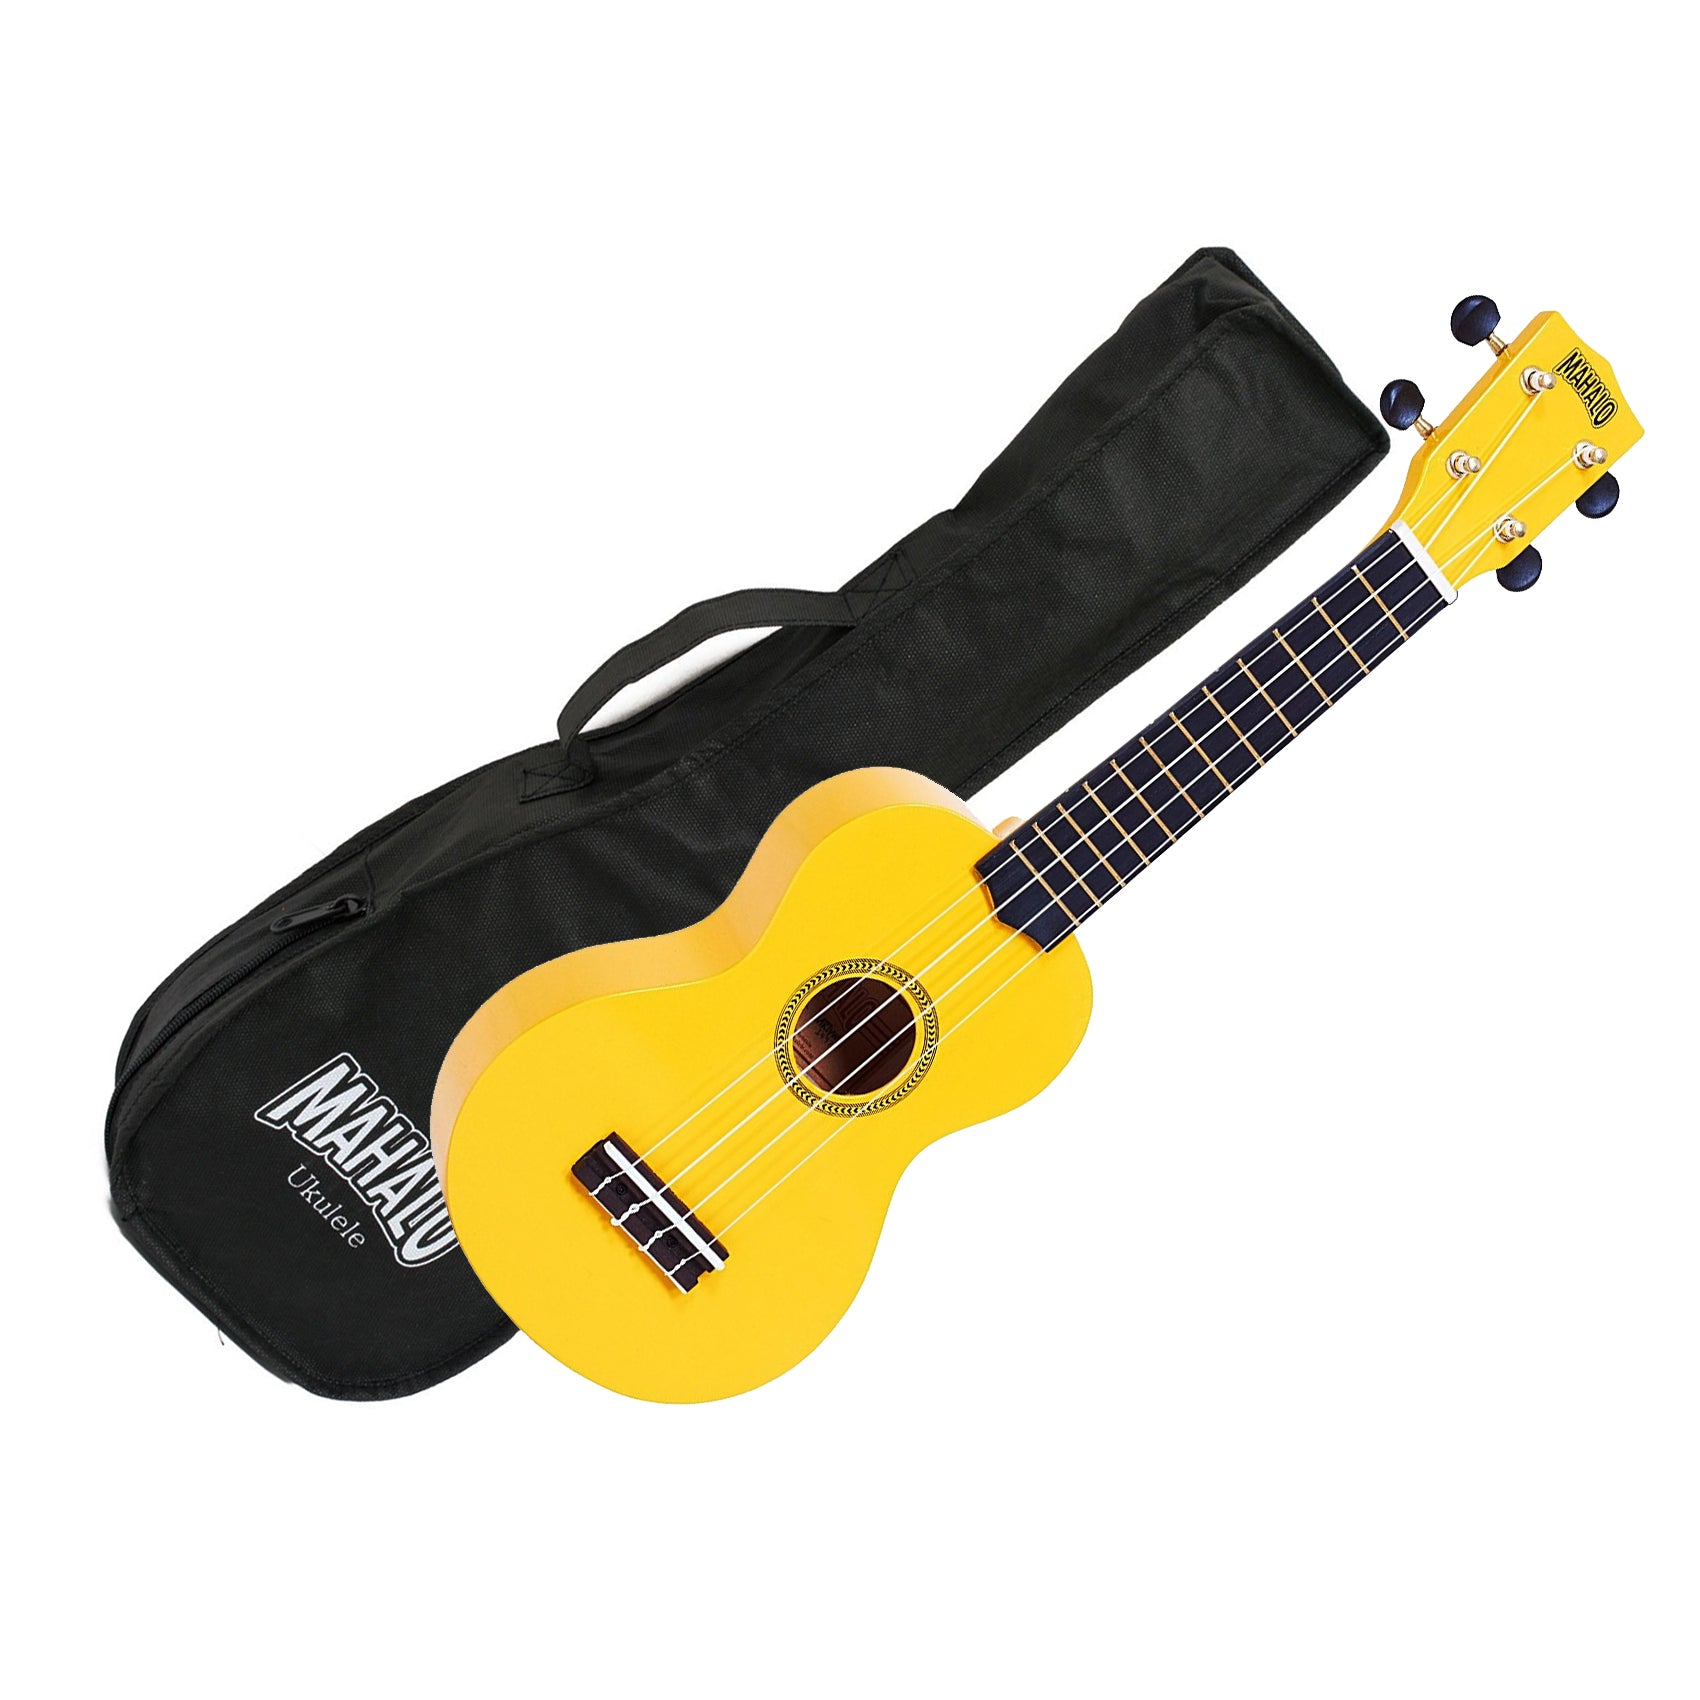 Mahalo MR1-YW Soprano Ukulele w/ Bag - Yellow